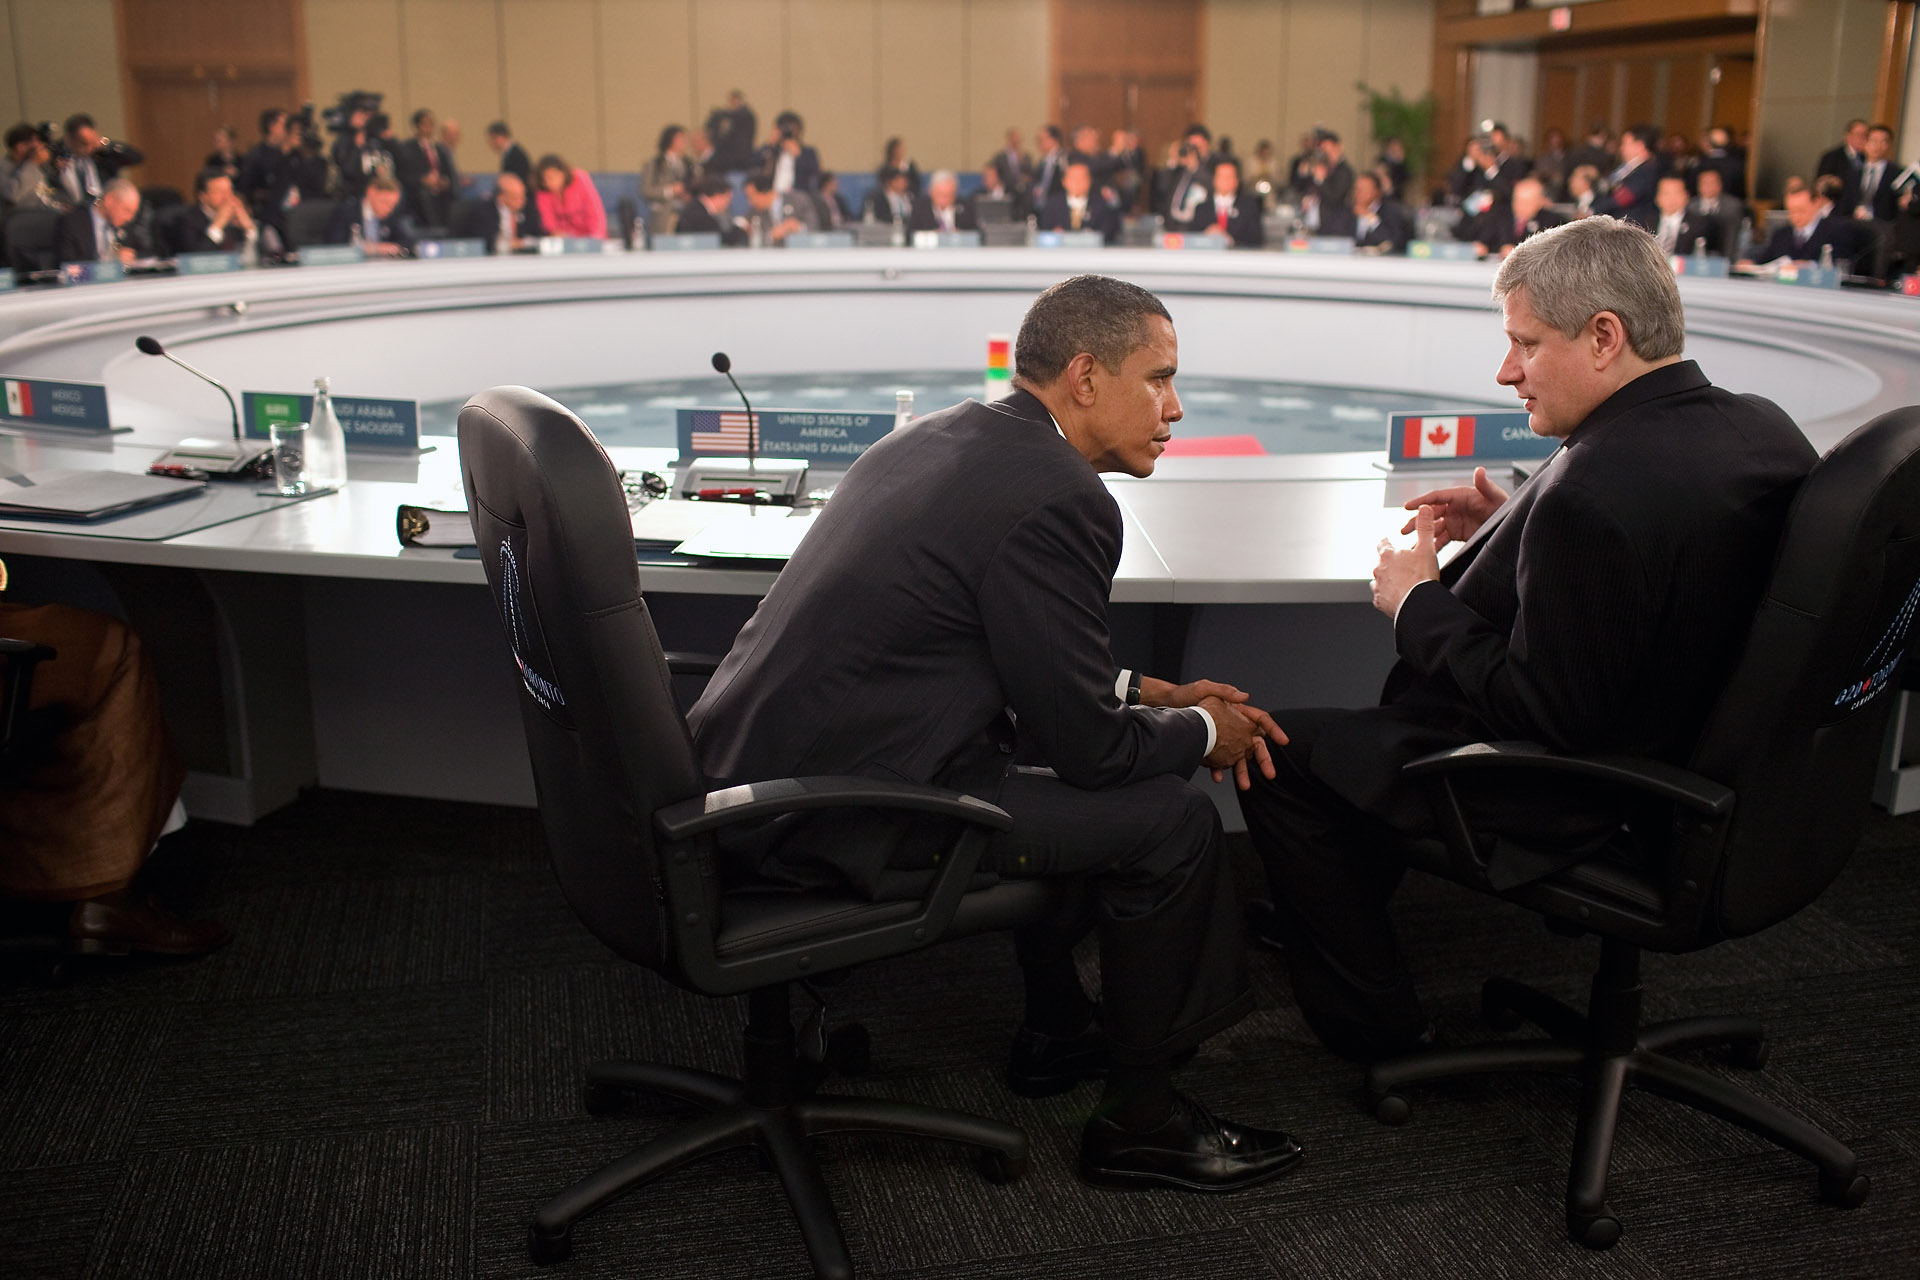 President Barack Obama Talks with Prime Minister Stephen Harper of Canada at the G20 Summit in Toronto